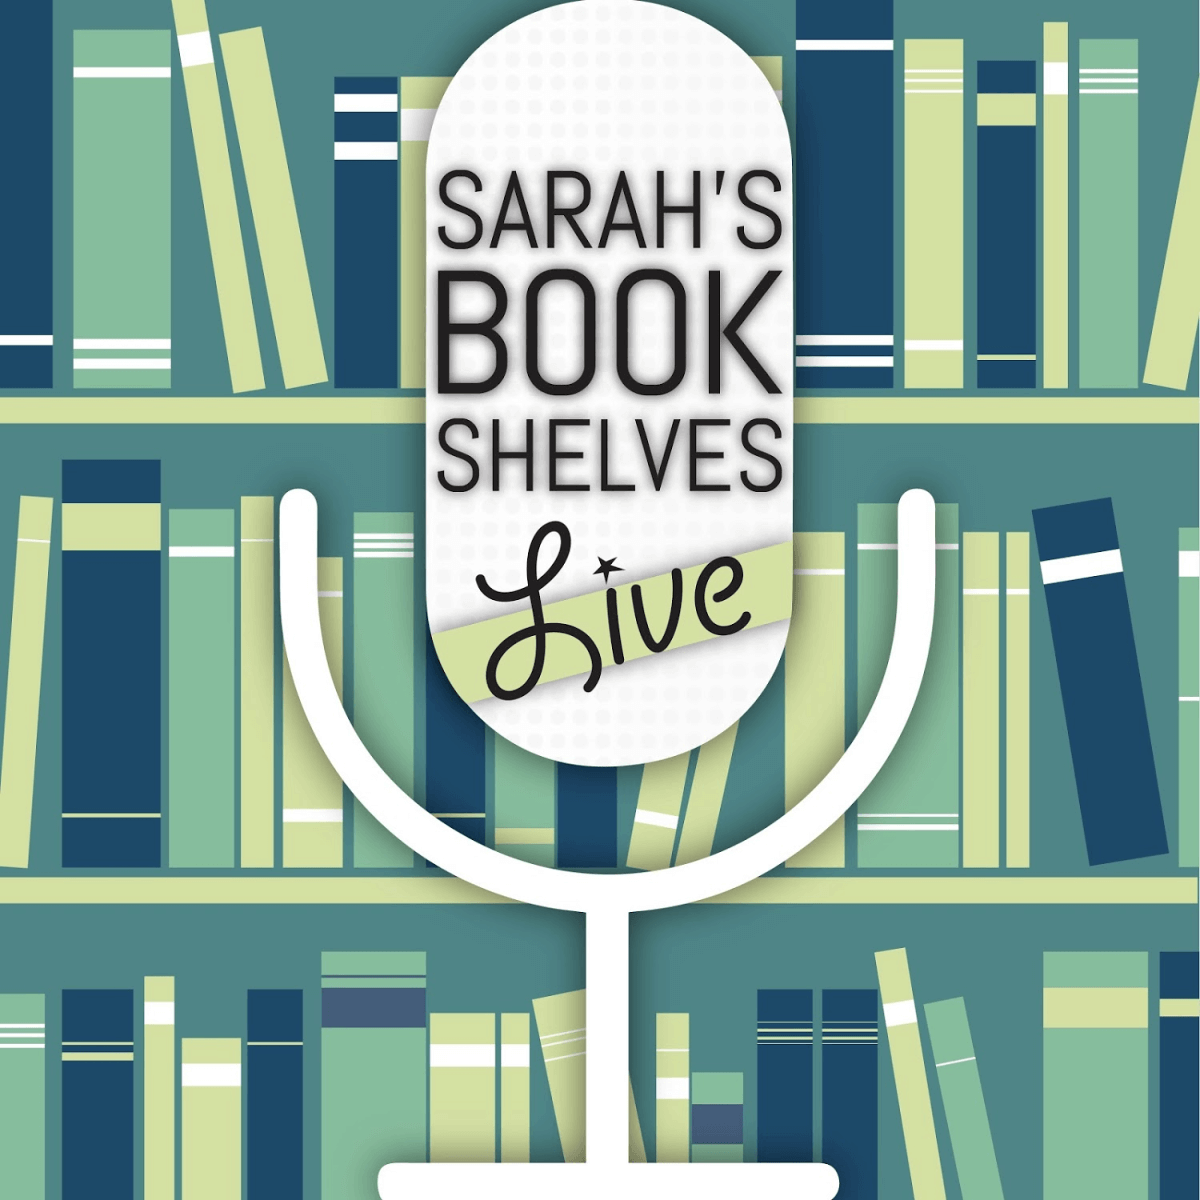 Sarah's Book Shelves Live